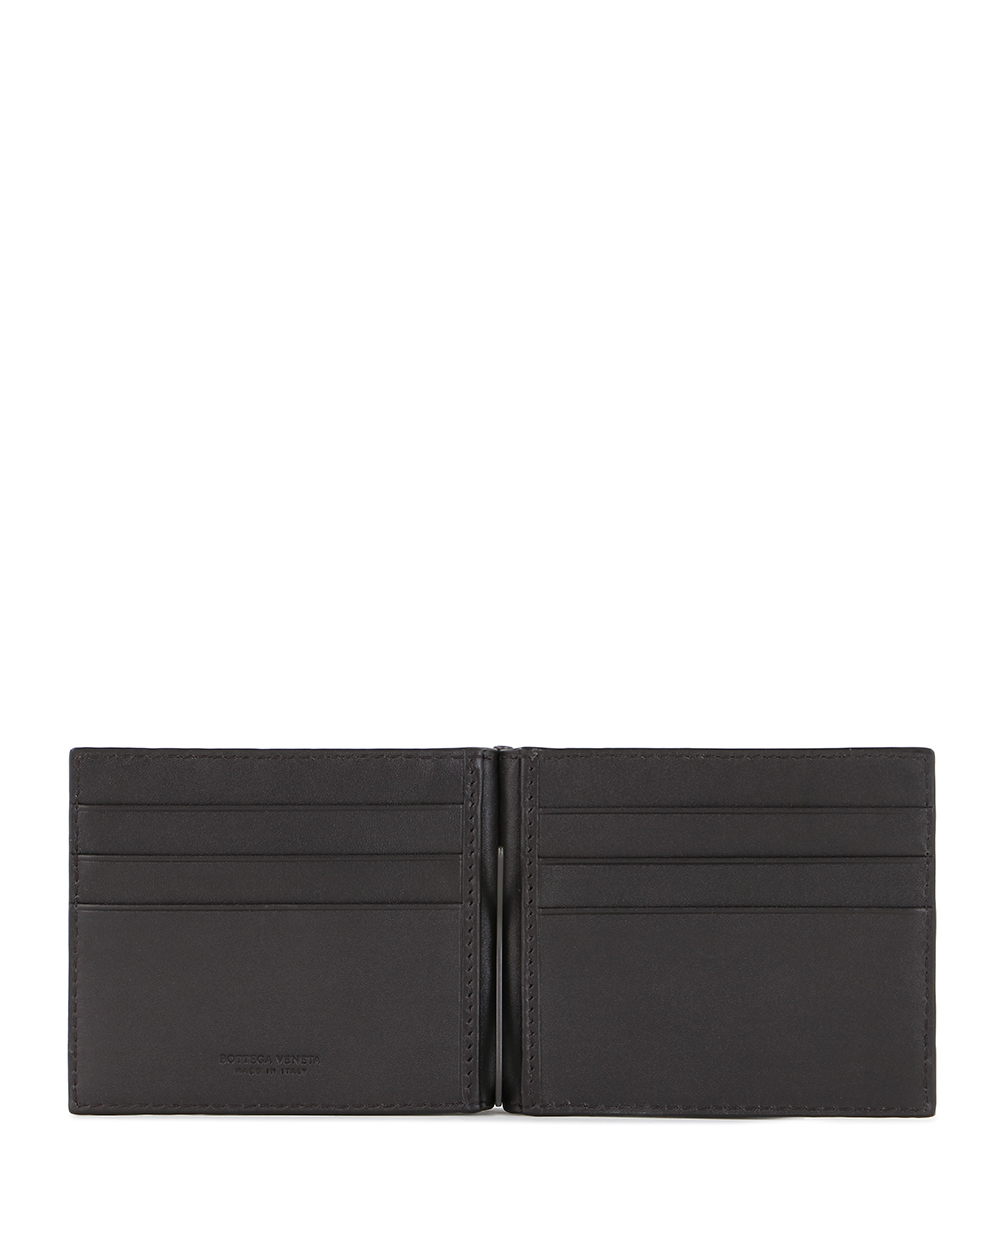 Woven leather wallet 1